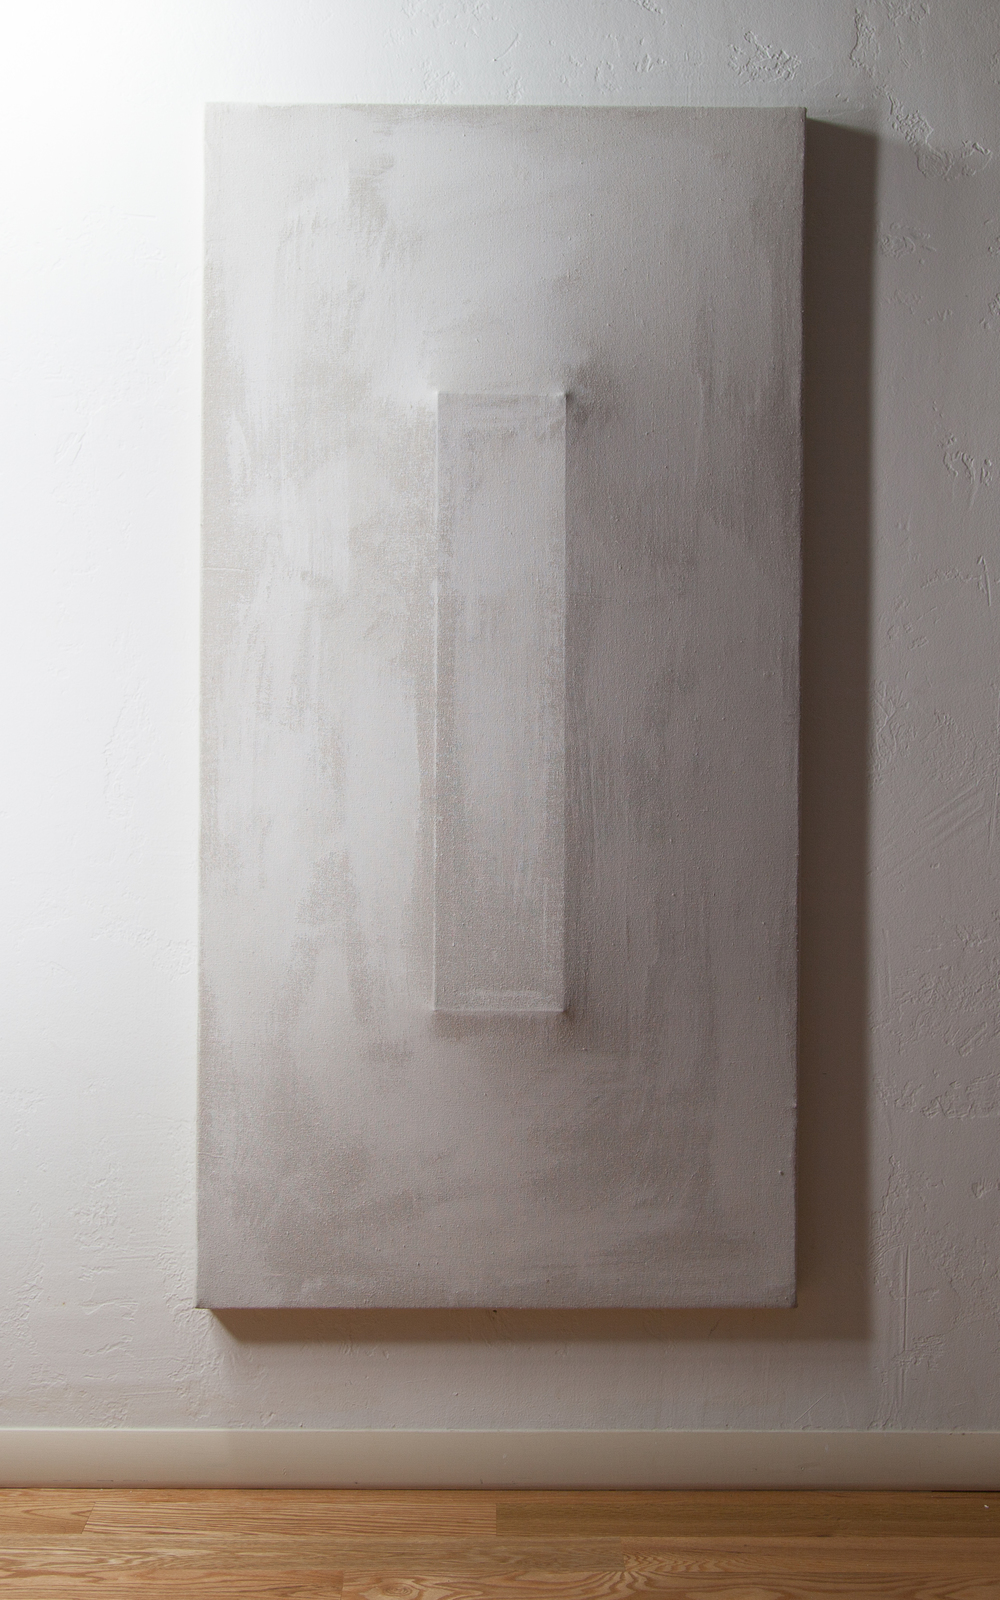 There's a Block in the Void (1020),  2015, gesso on shaped canvas, 48 x 24 in., Installation *